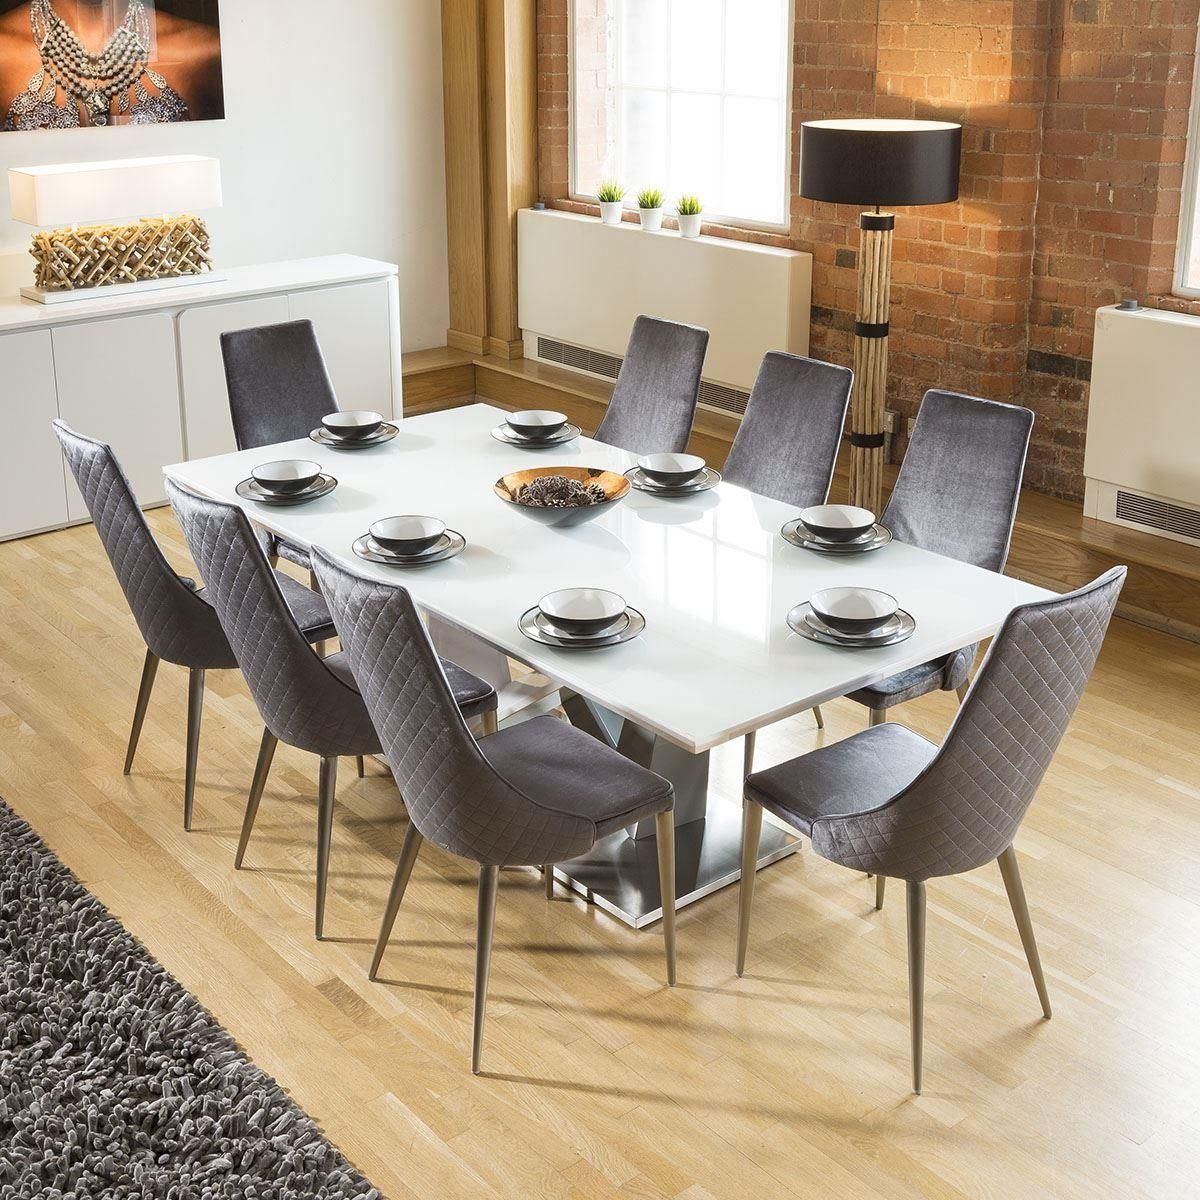 Huge 8 Seater Dining Set 2 2 White Glass Top Table 8 Grey Velvet